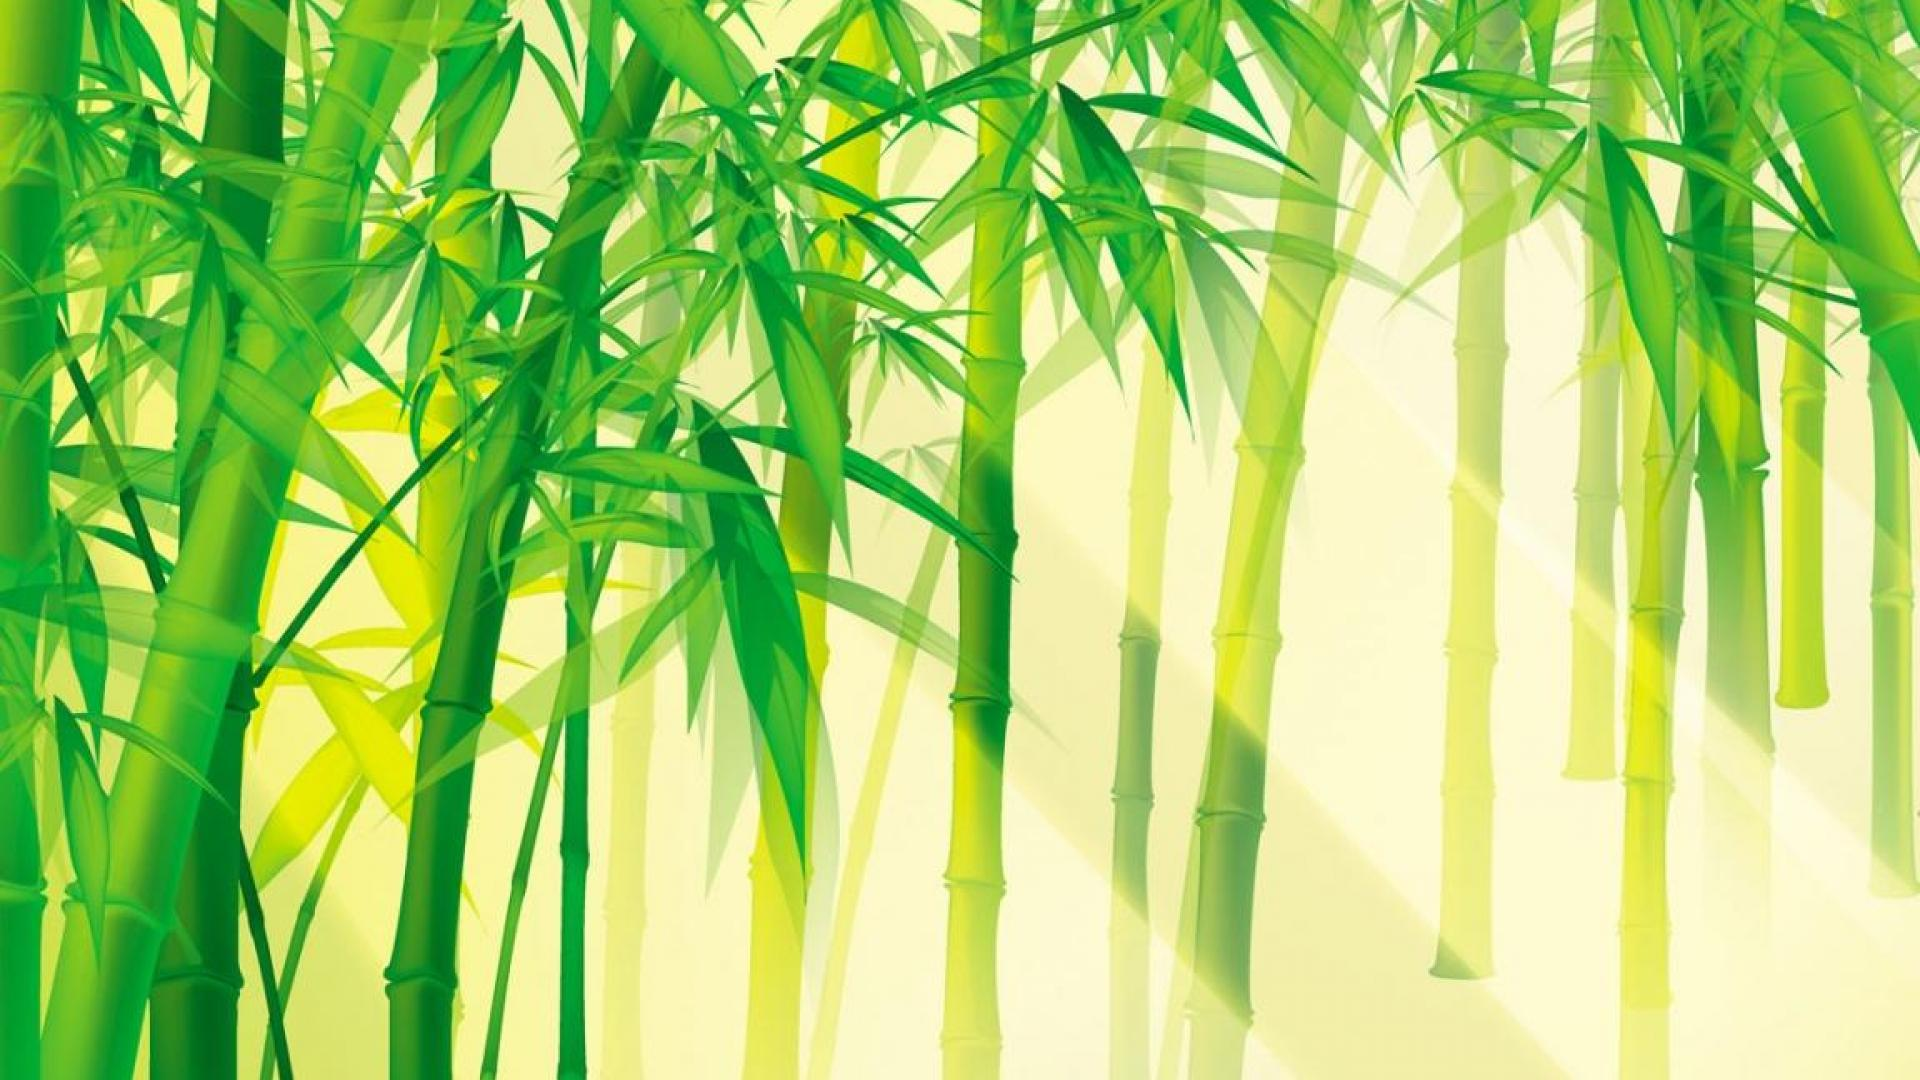 Forest clipart bamboo forest  Forest Bamboo Bamboo wallpaper